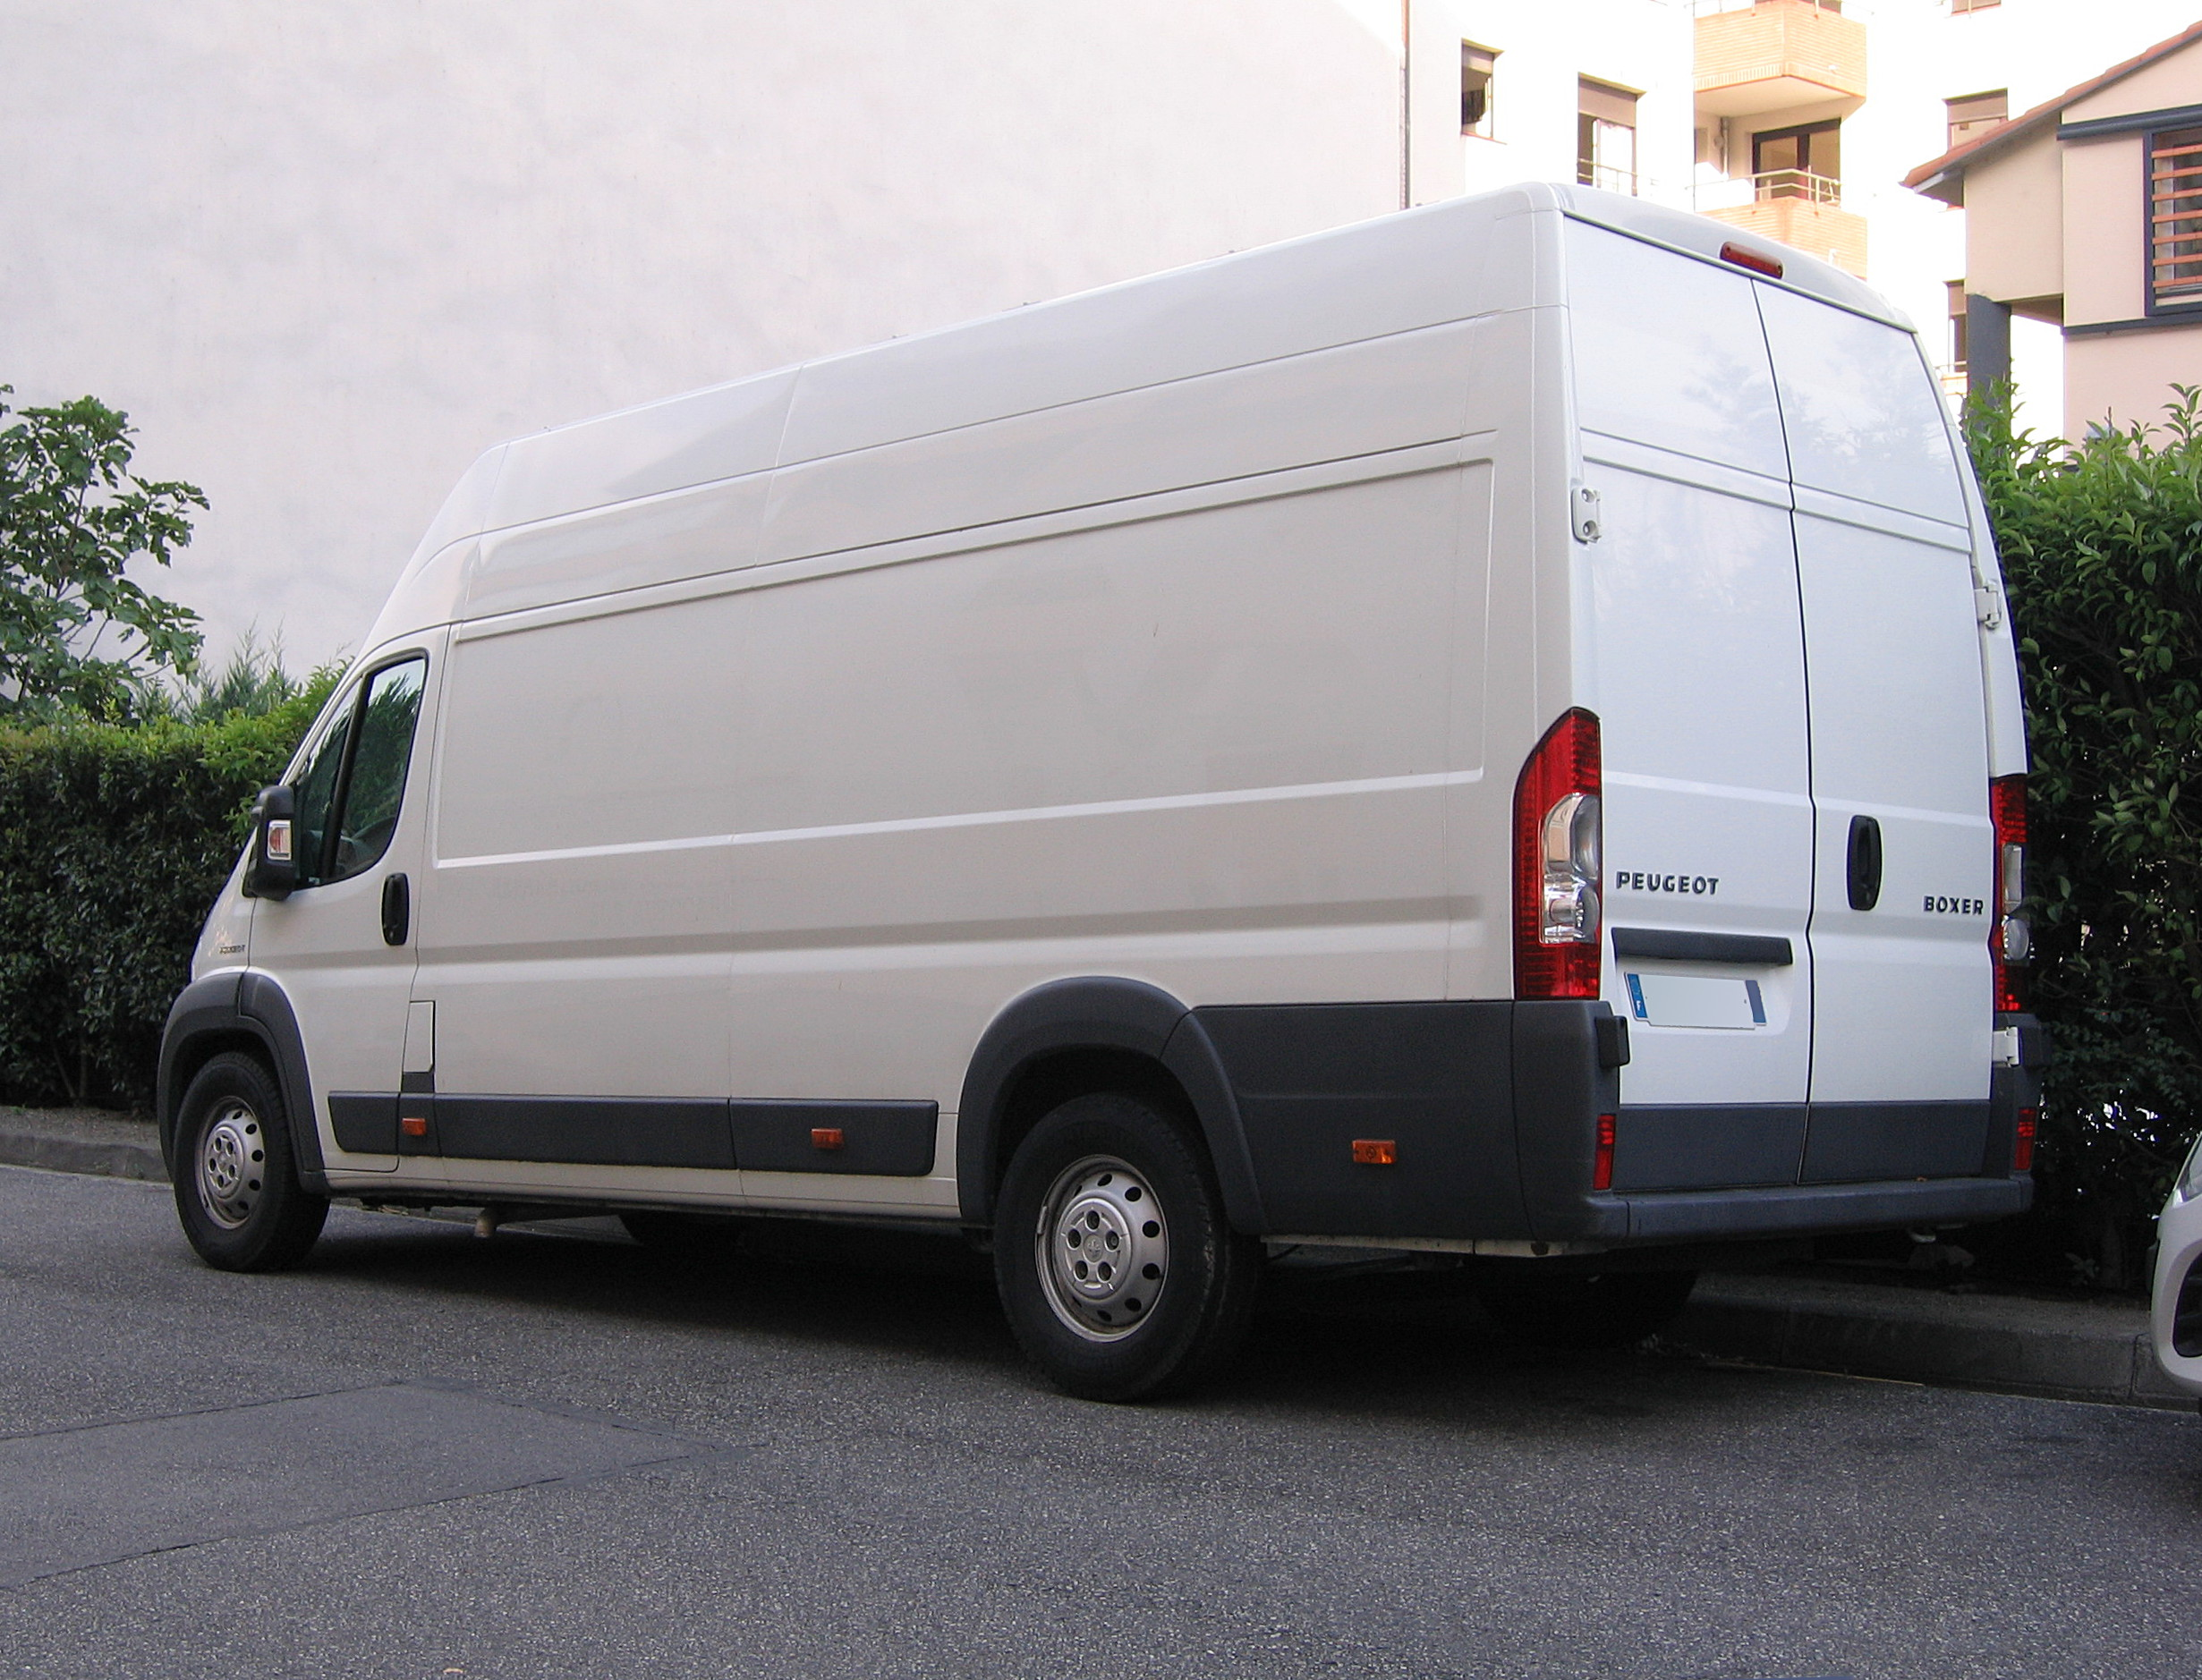 file 2006 2014 l4h3 peugeot boxer panel van rl jpg wikimedia commons. Black Bedroom Furniture Sets. Home Design Ideas